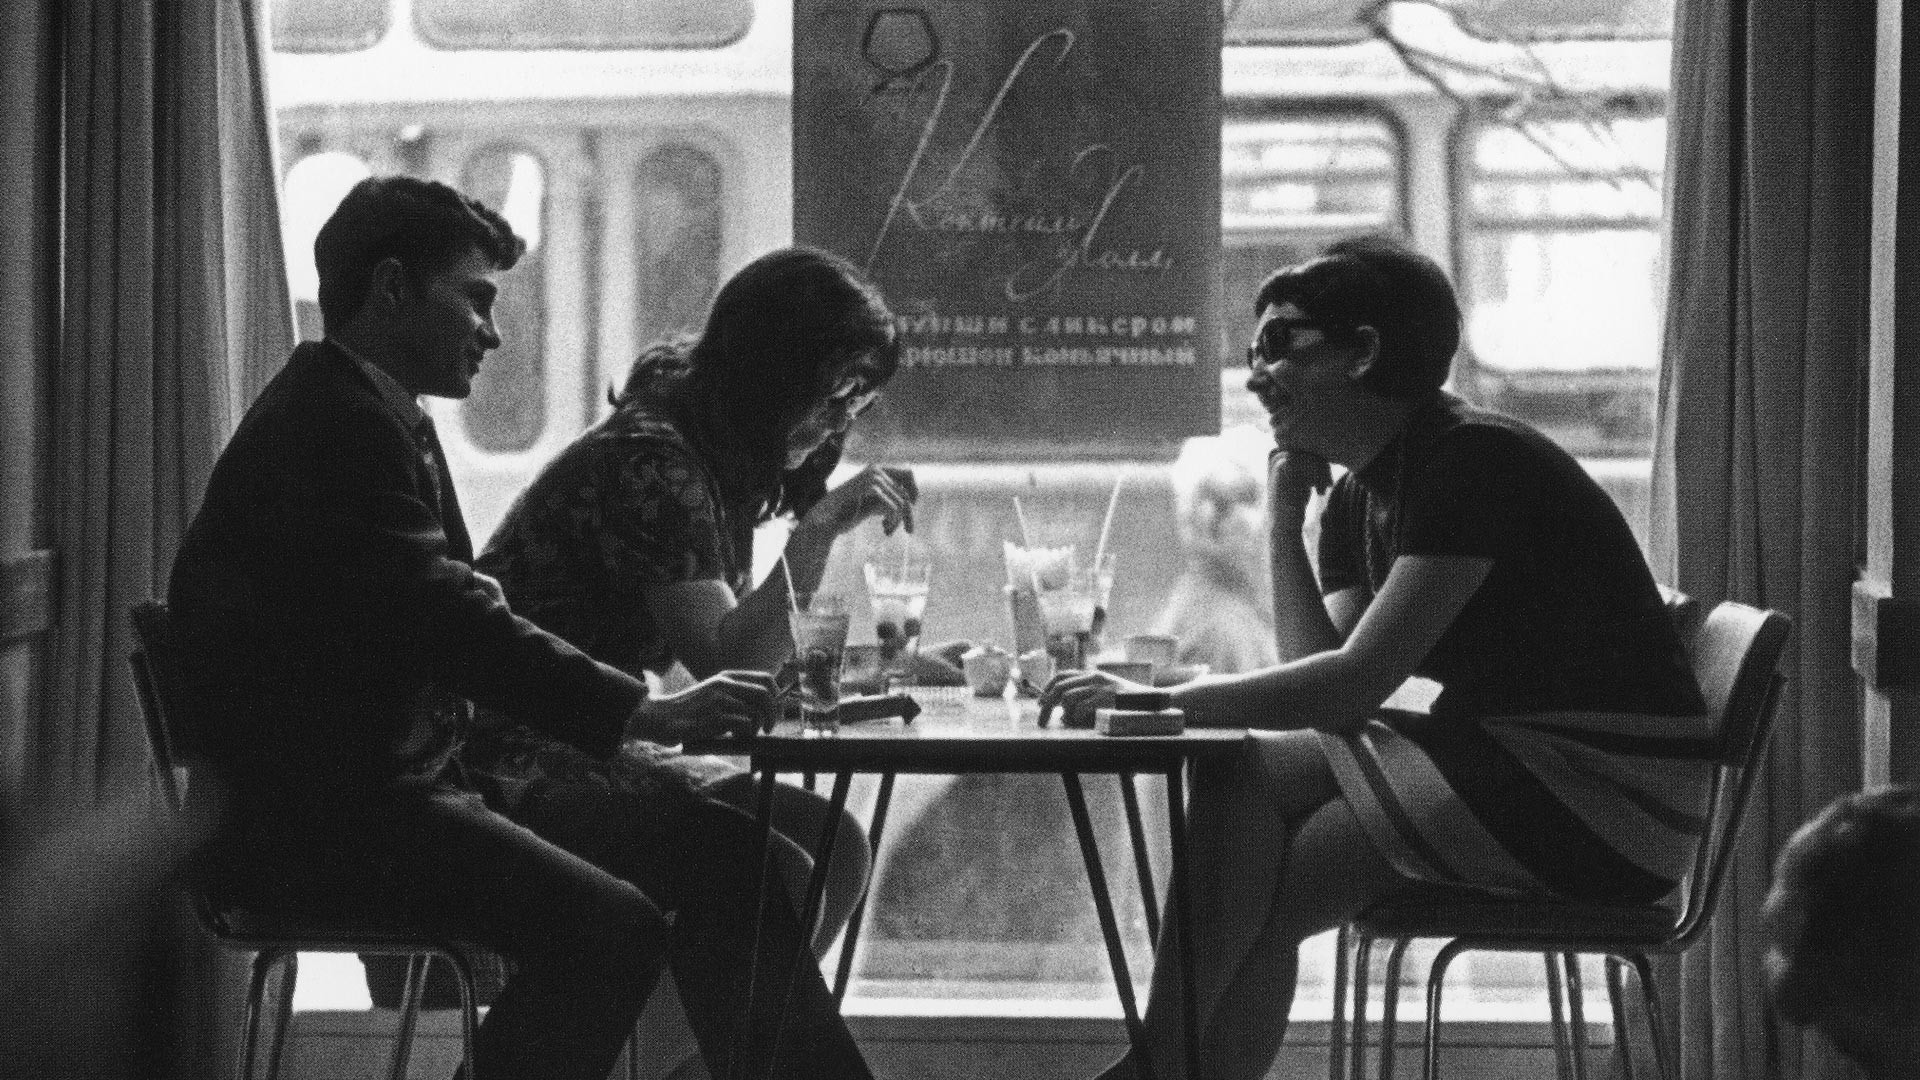 Youth in Moscow, USSR, drinking cocktails in a western style cafe